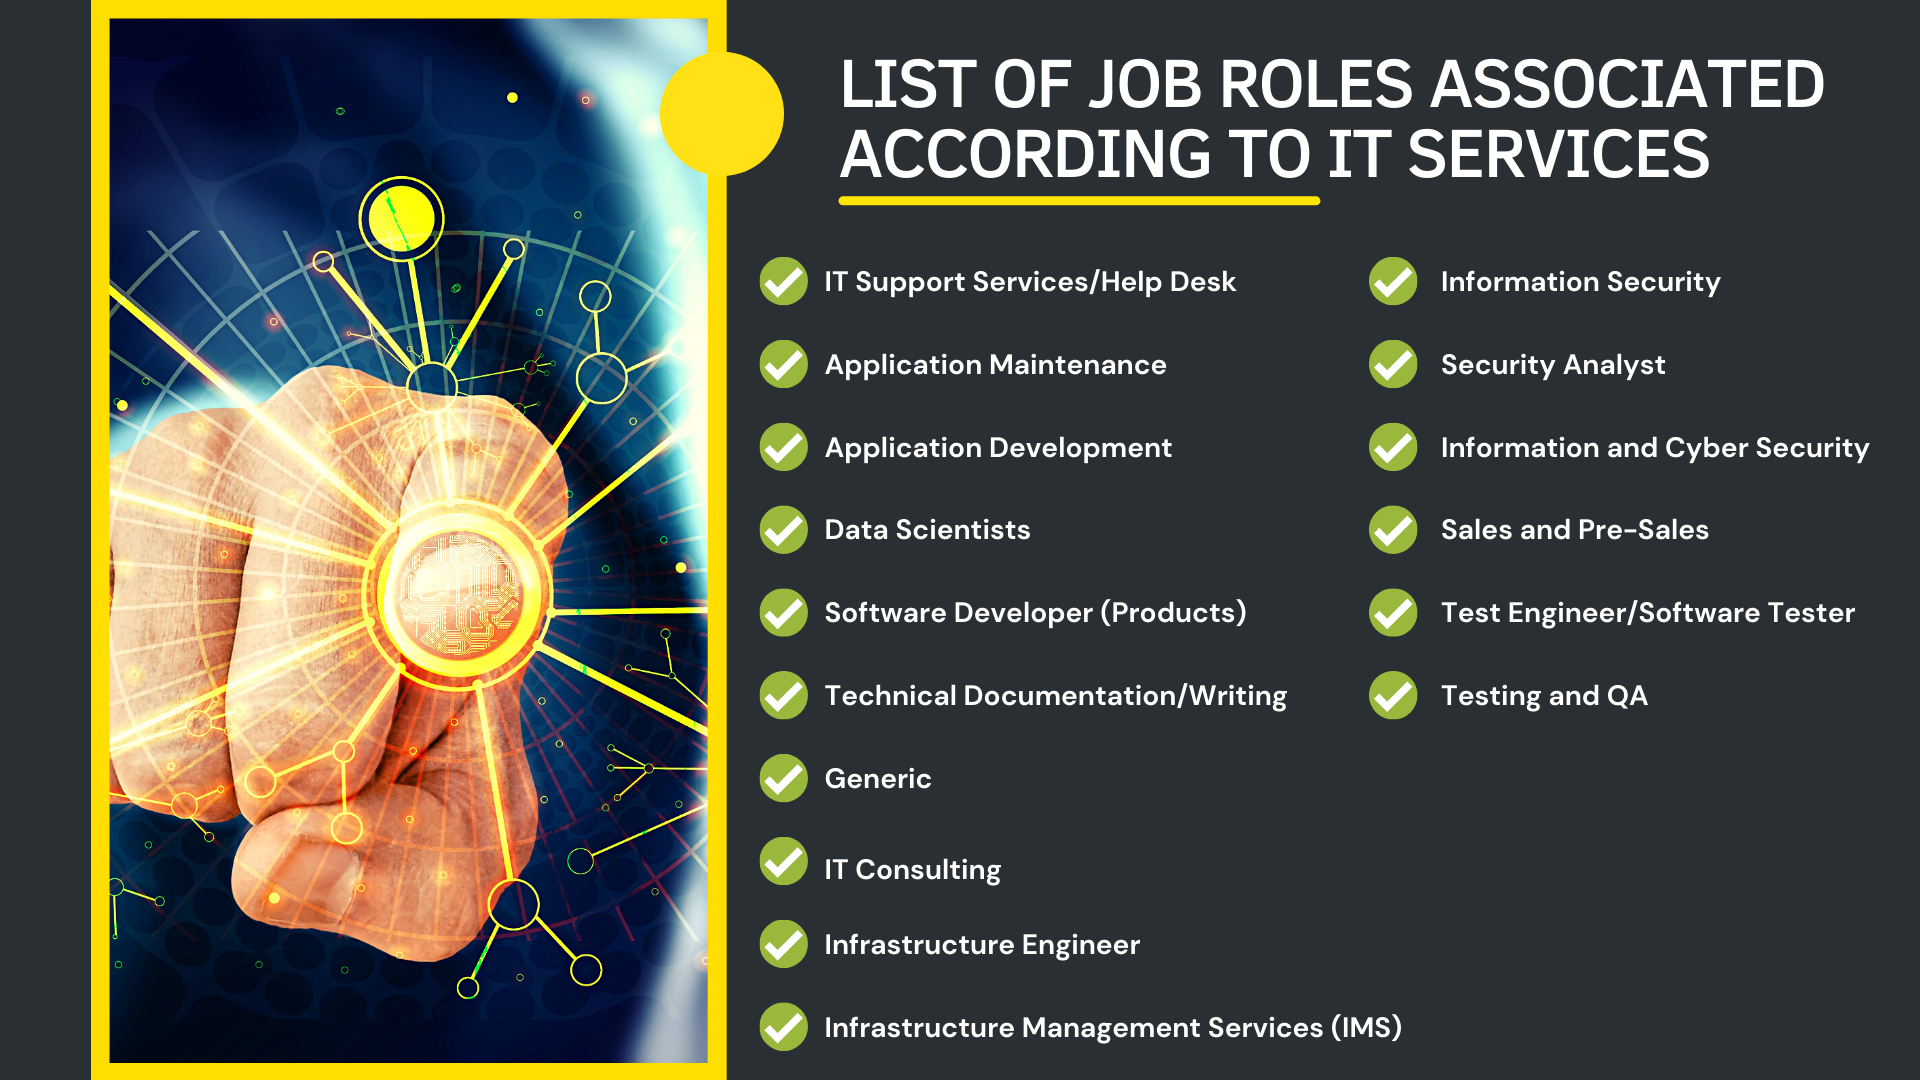 List Of Job Roles Associated According To IT Services